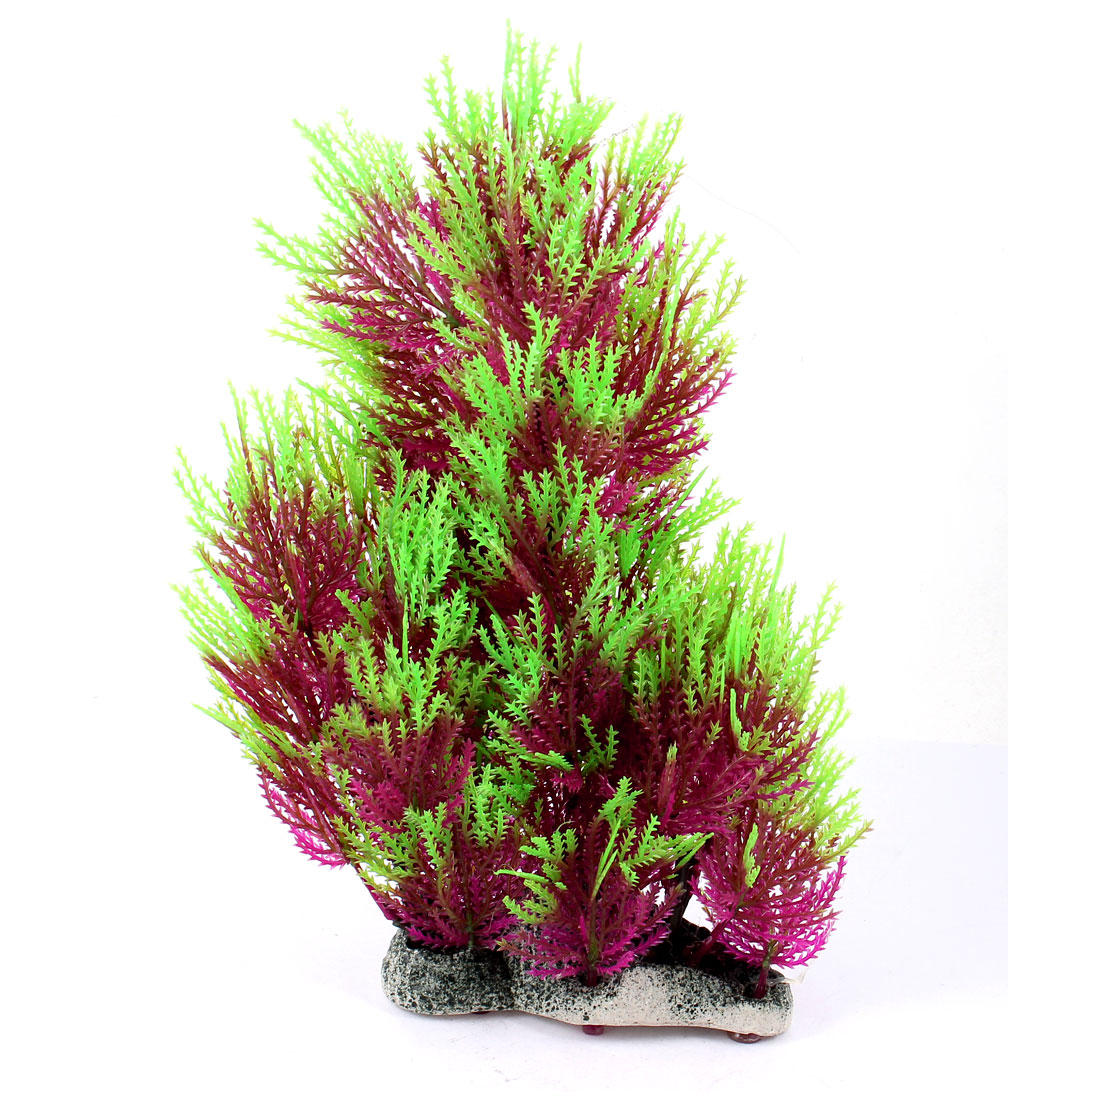 26cm High Aquarium Landscape Manmade Plastic Plant Grass Decor Green Purple